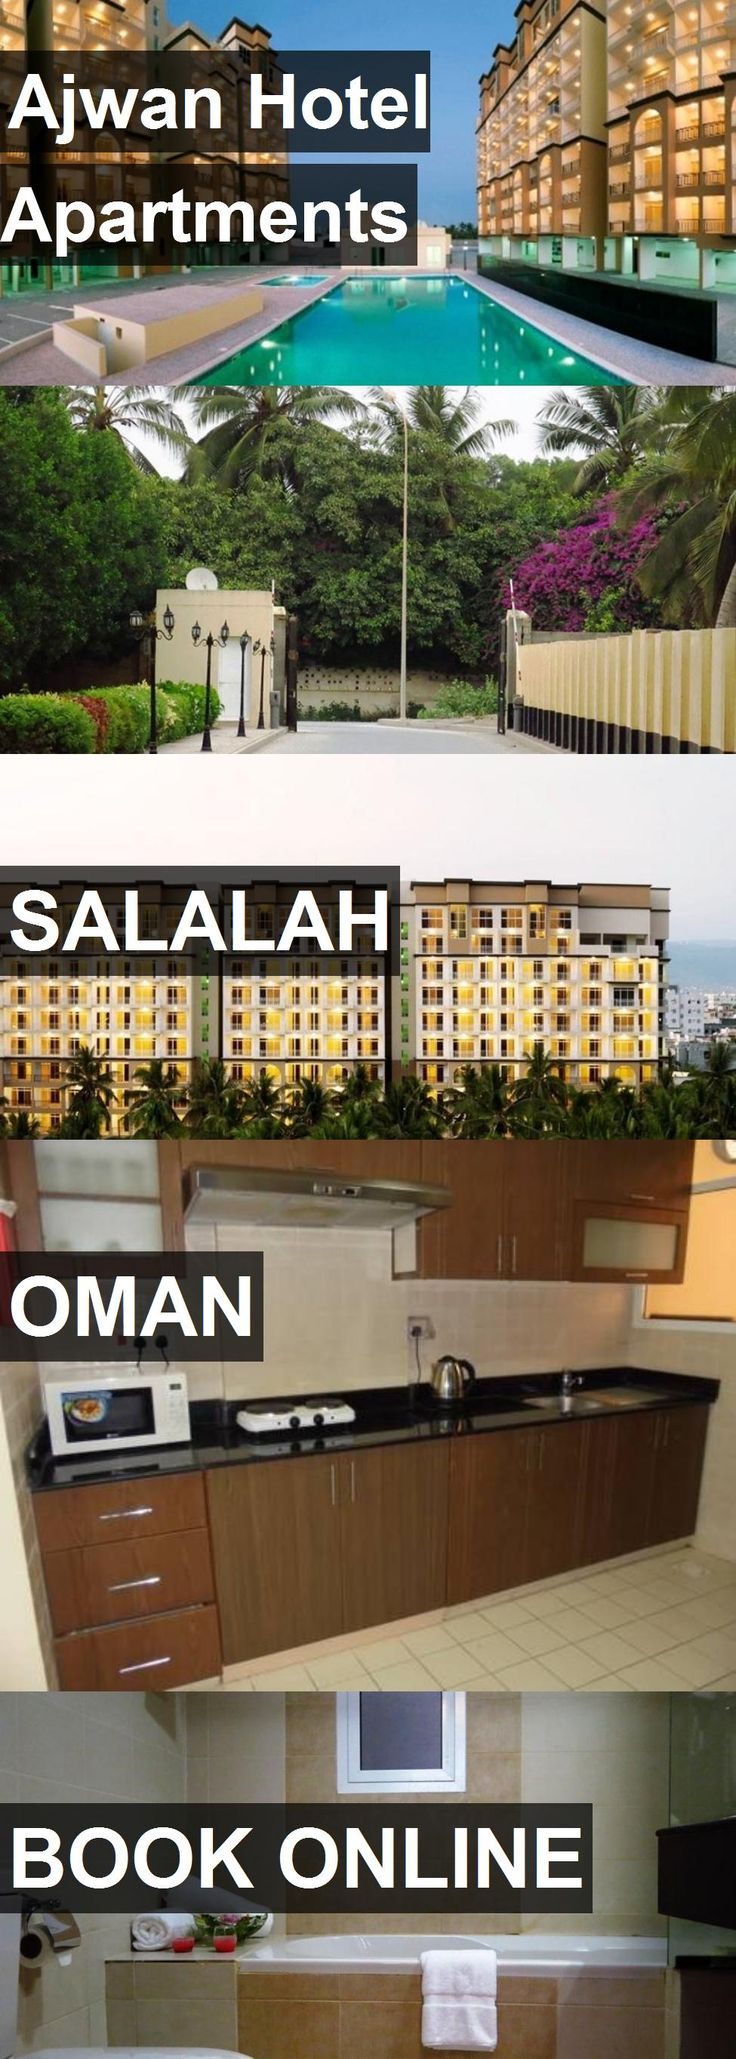 Ajwan Hotel Apartments in Salalah, Oman. For more information, photos, reviews and best prices please follow the link. #Oman #Salalah #travel #vacation #hotel #apartment